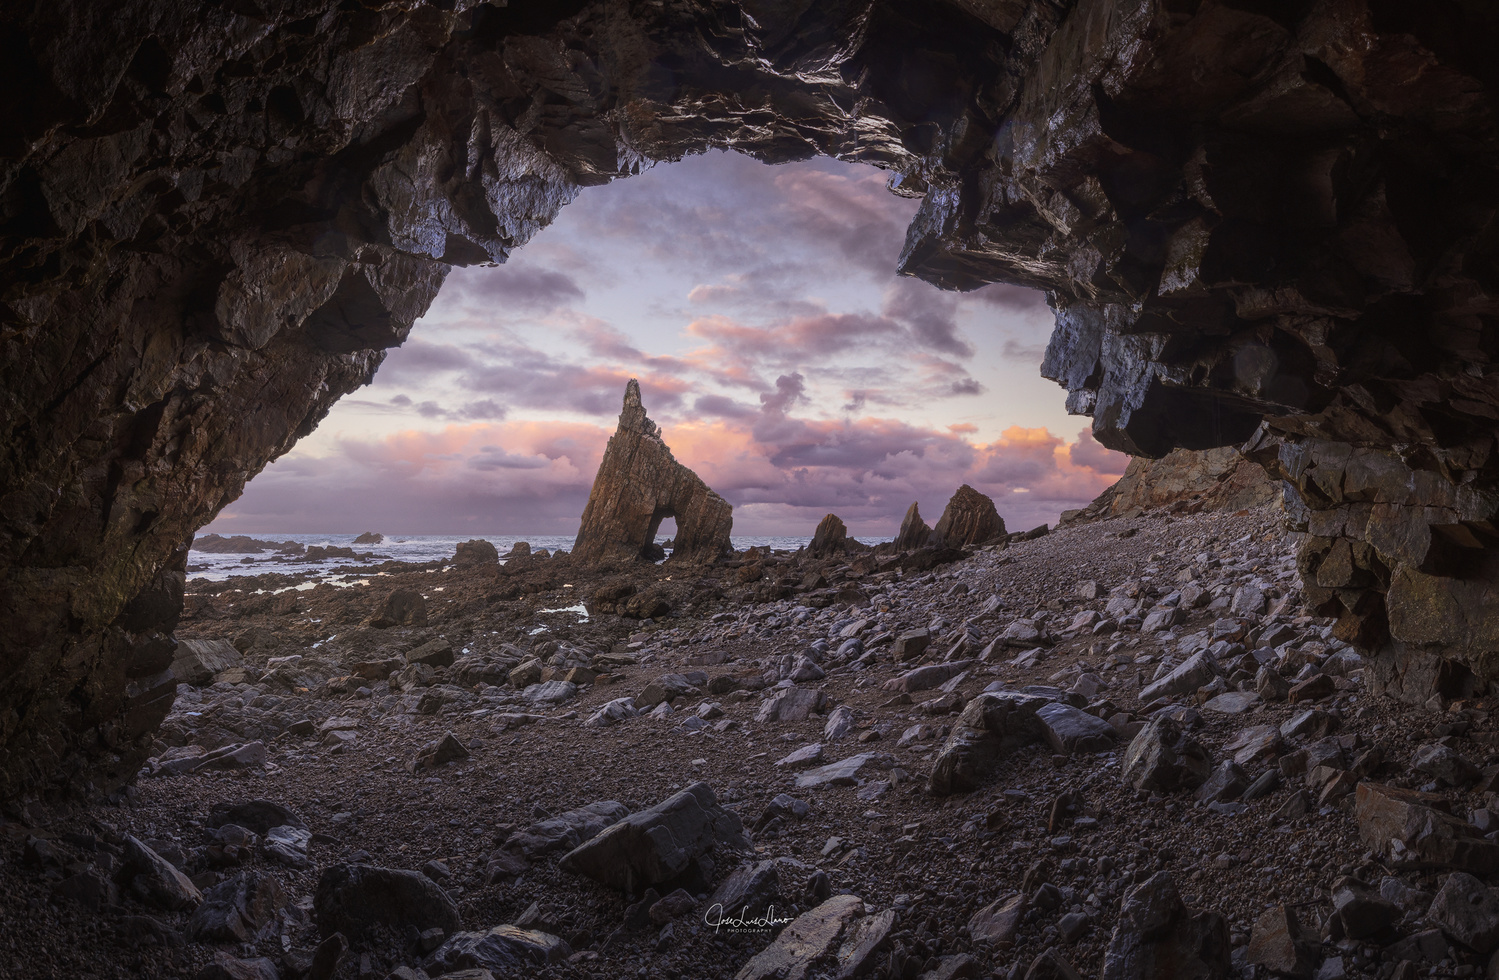 THROUGH THE HOLE by Jose Luis Llano